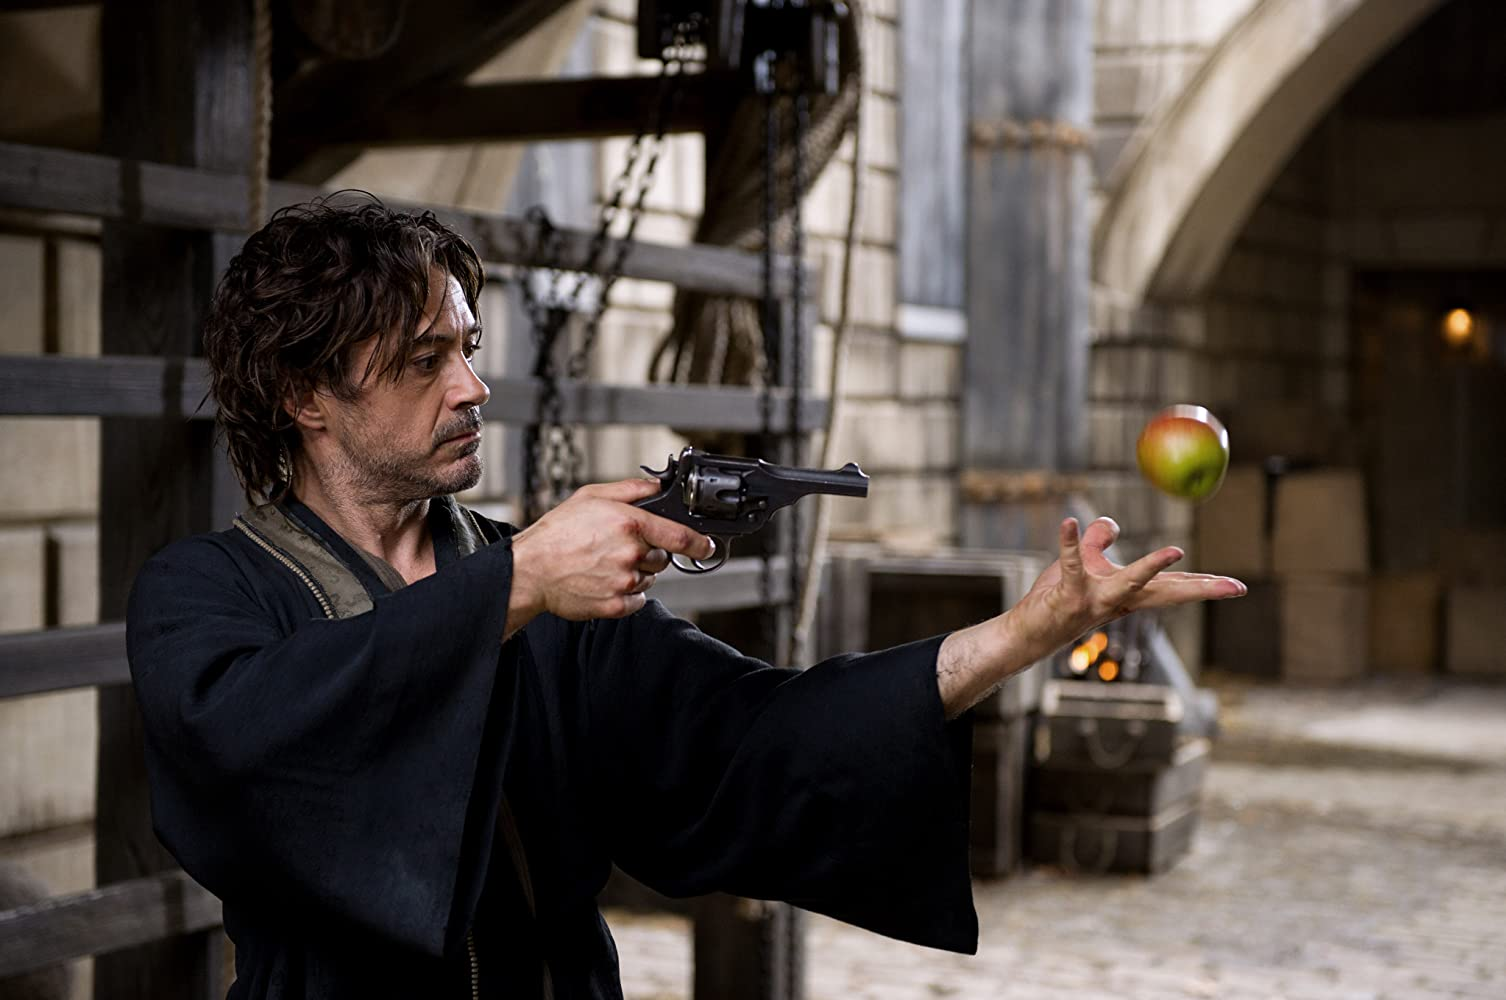 Robert Downey Jr. in Sherlock Holmes: A Game of Shadows (2011)